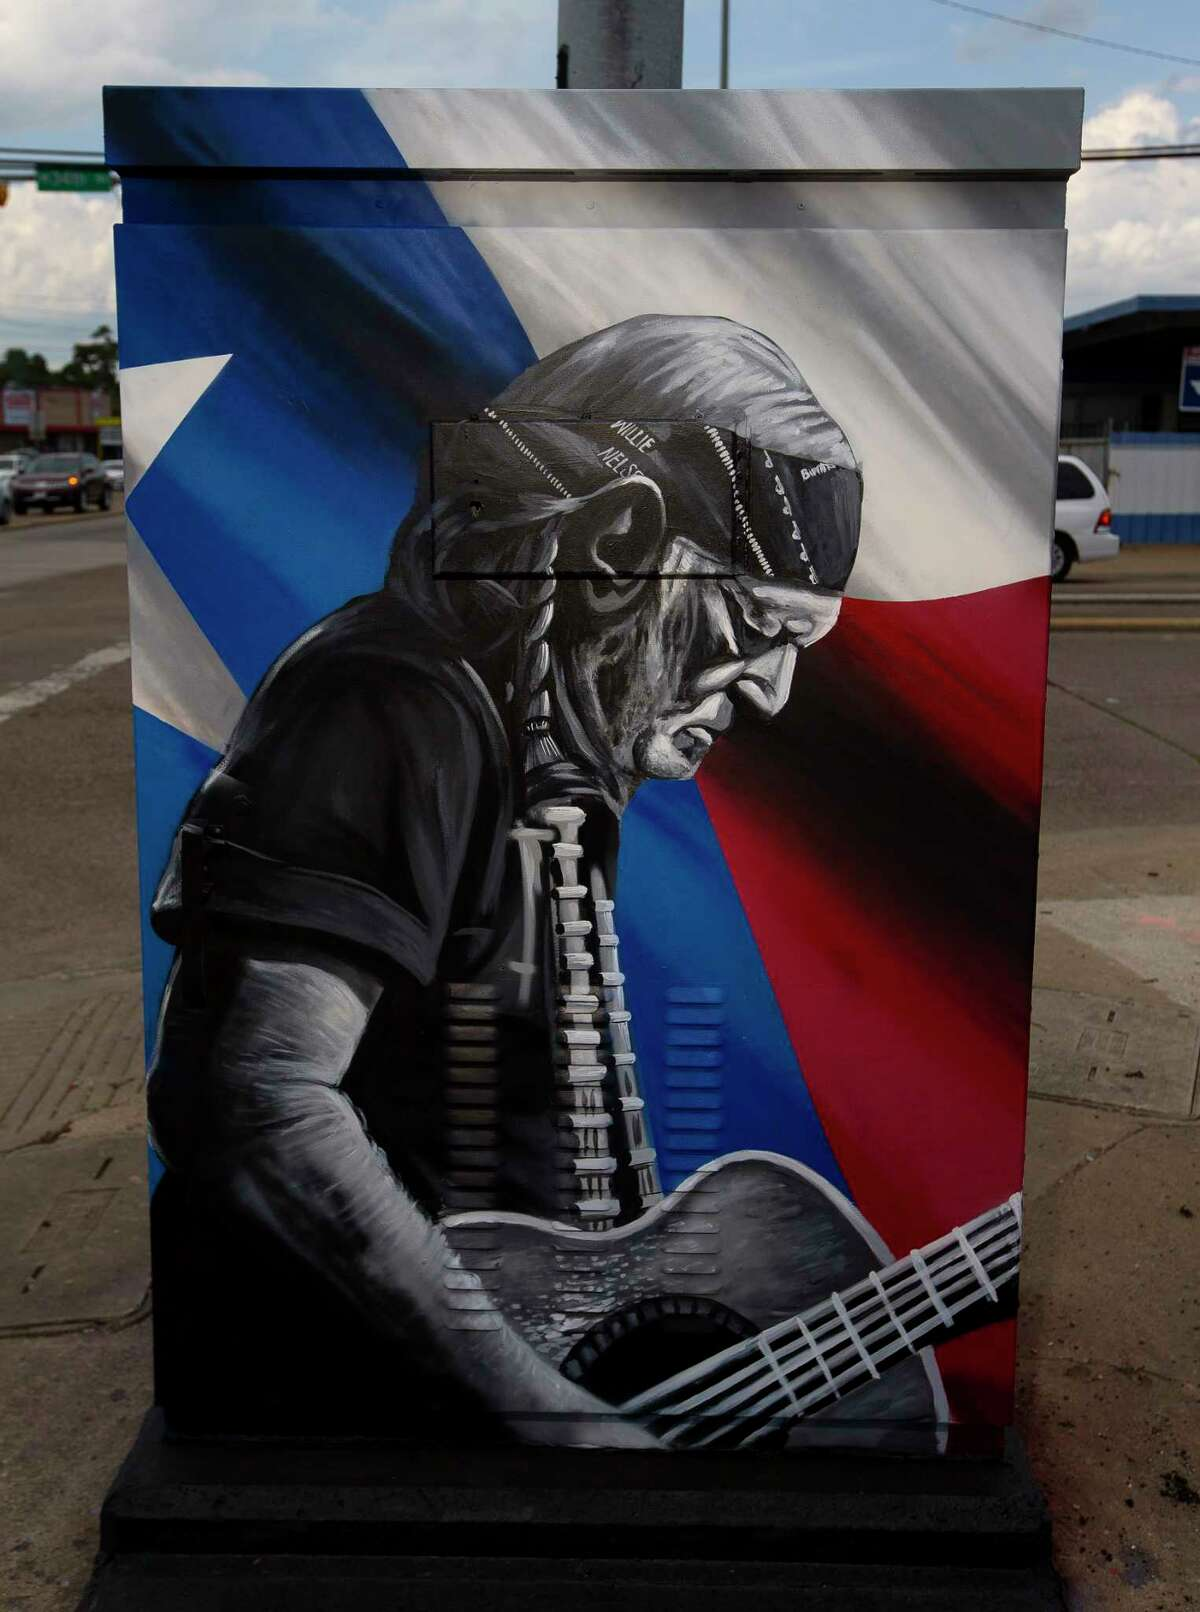 Street artist w3r3on3 painted this mural of Willie Nelson on a traffic signal control box near 34th and Ella.